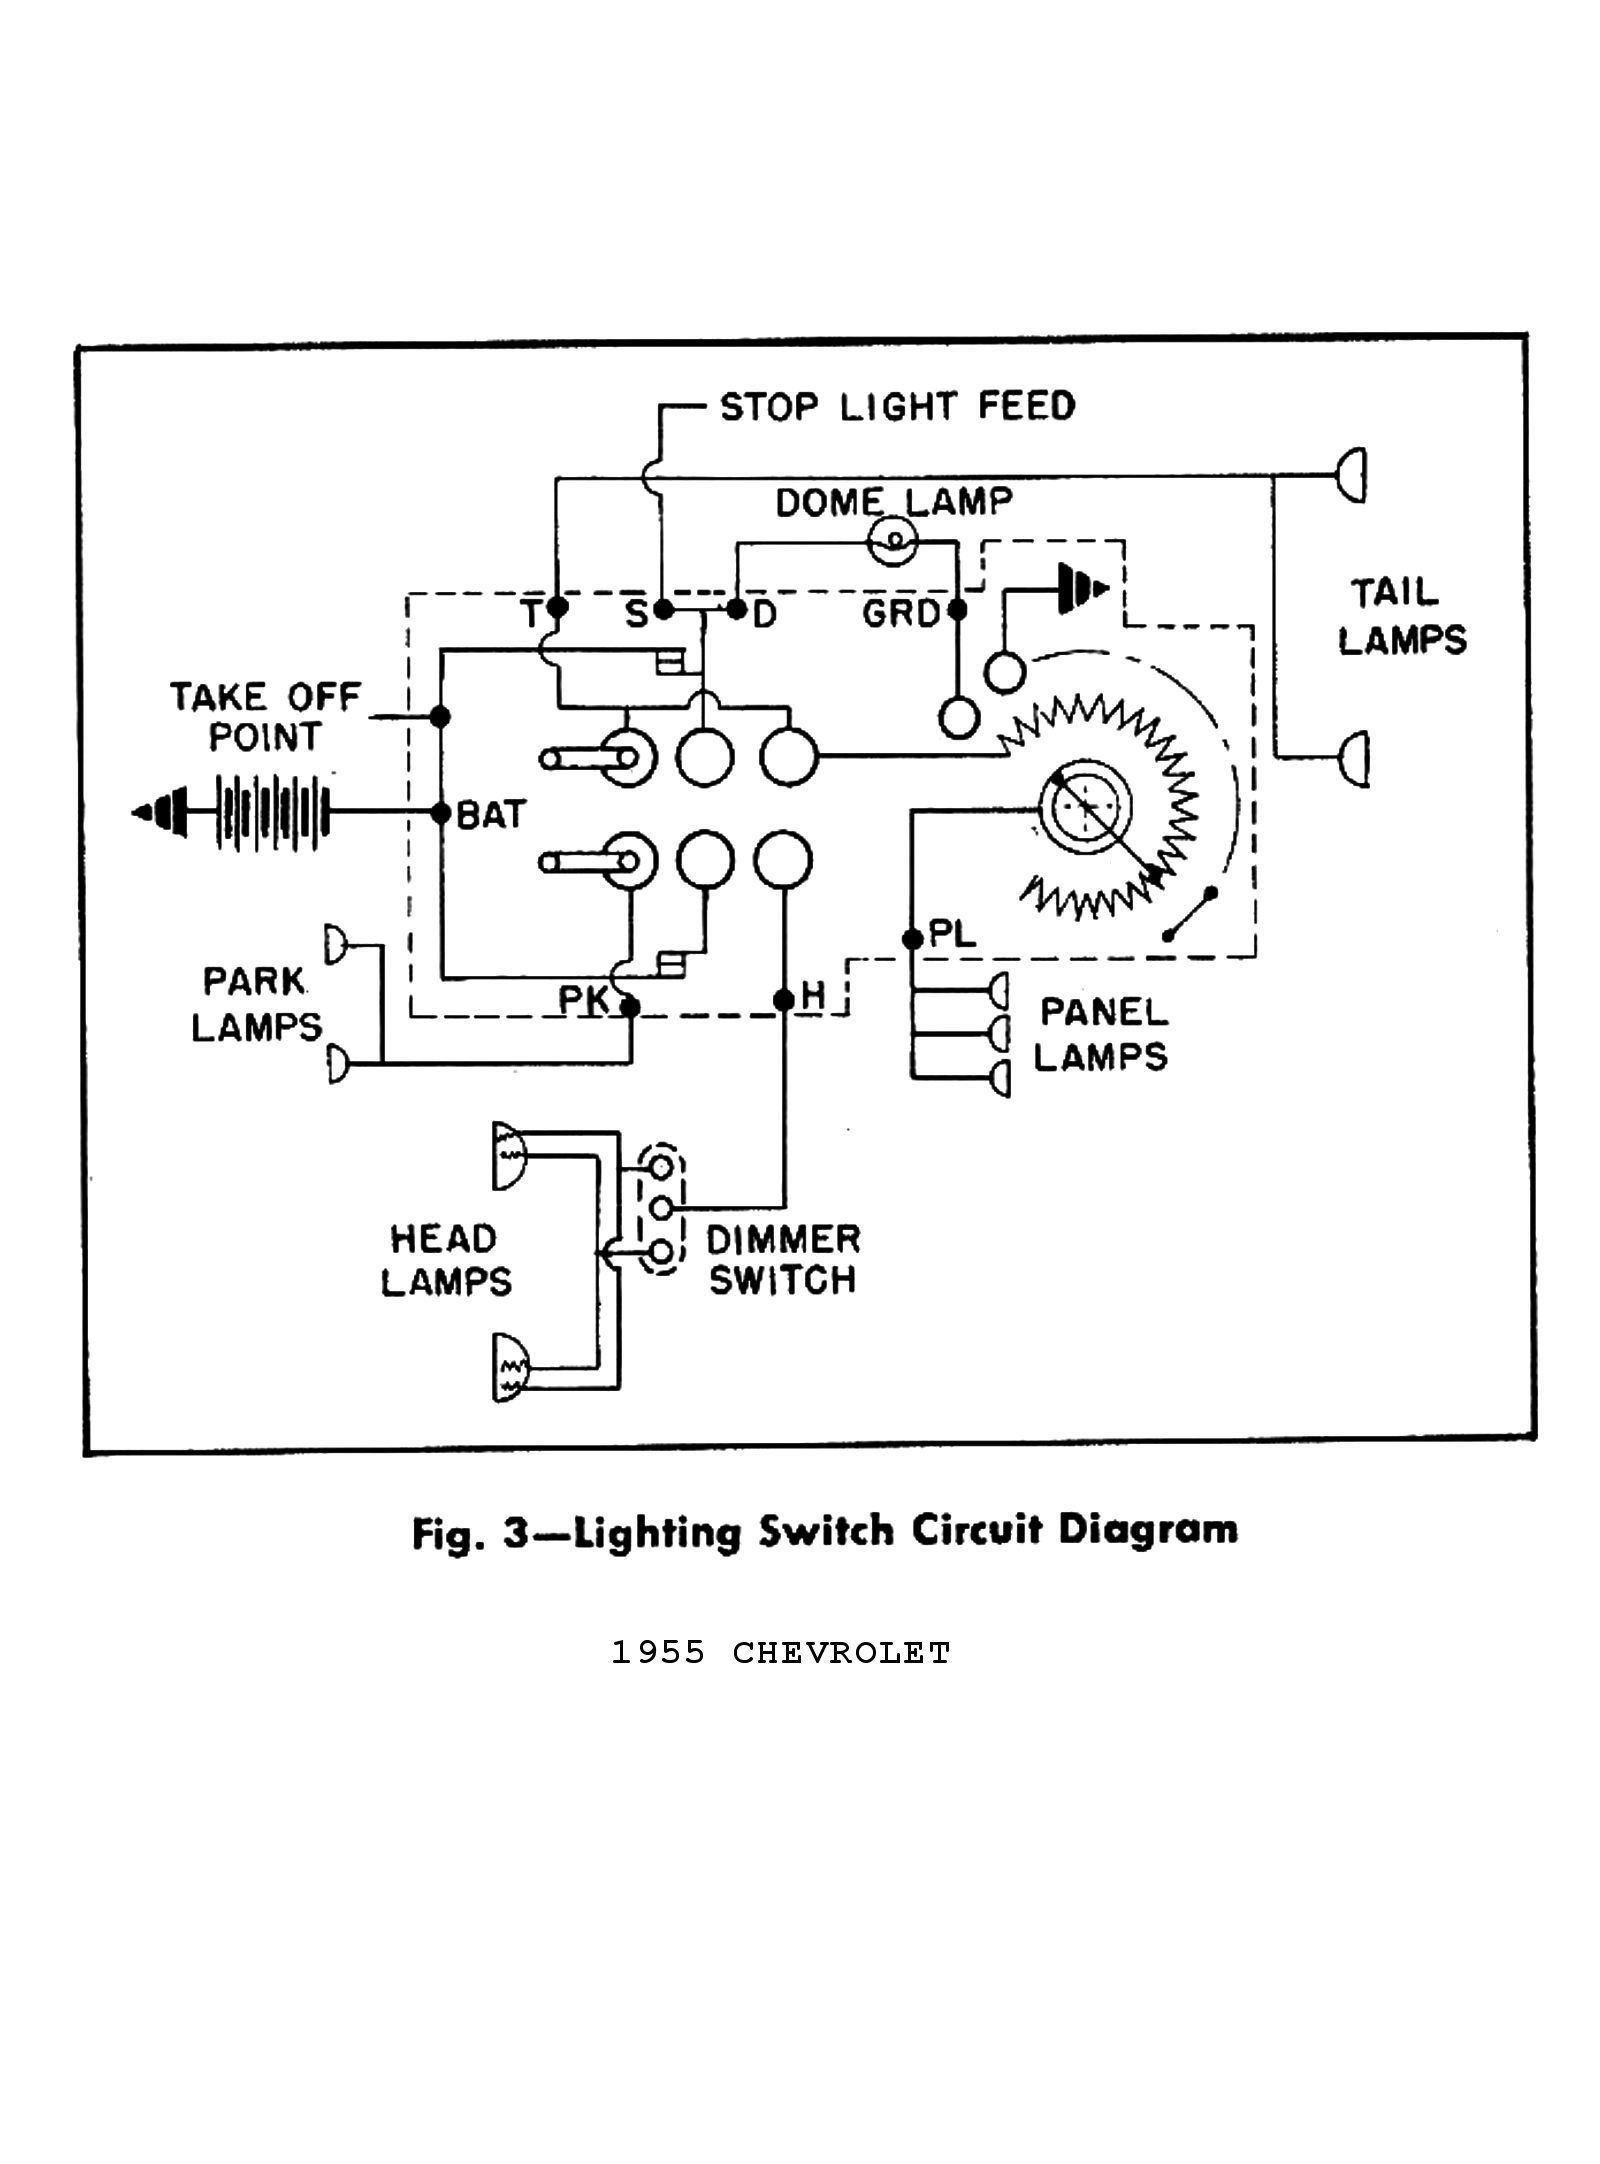 hight resolution of light switch wiring for 55 chevrolet data diagram schematic 51 turn signal switch and wiring question chevytalk free source 1958 chevrolet steering